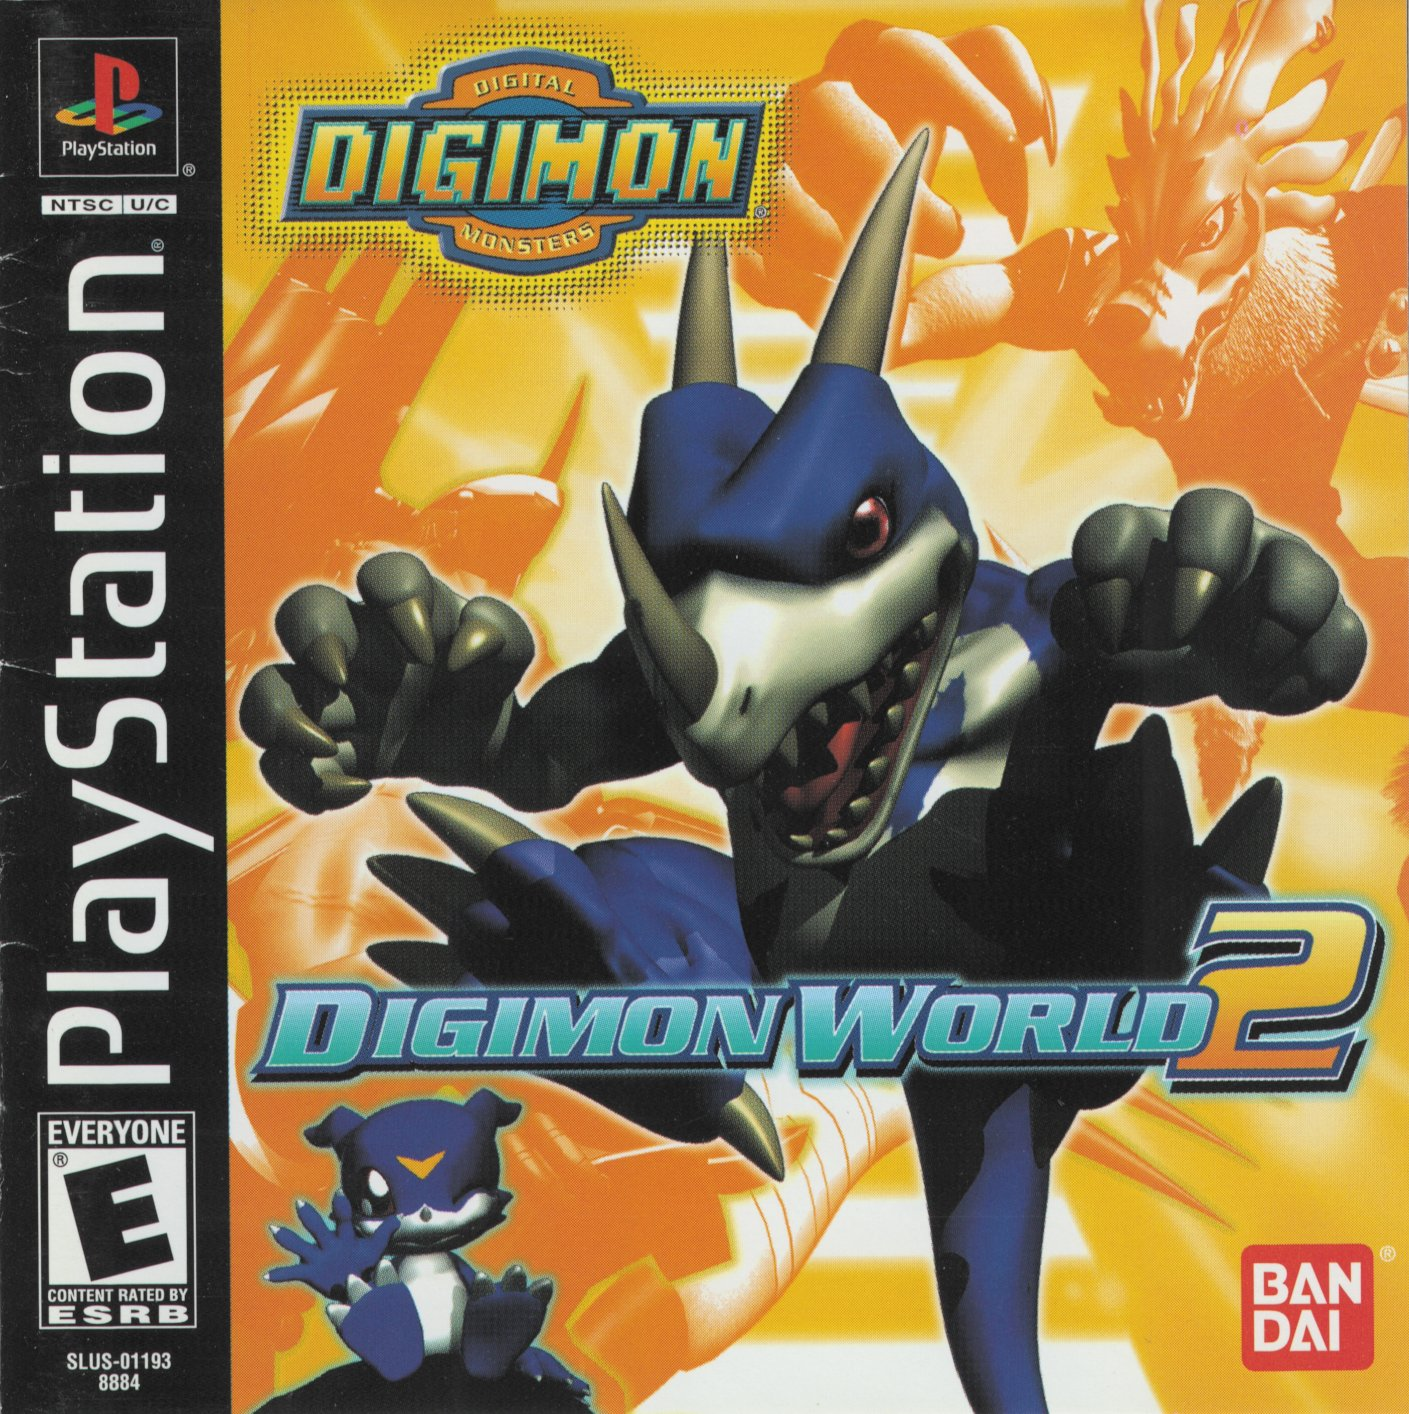 Digimon World 2 [SLUS-01193] ROM - Playstation (PS1) | Emulator Games